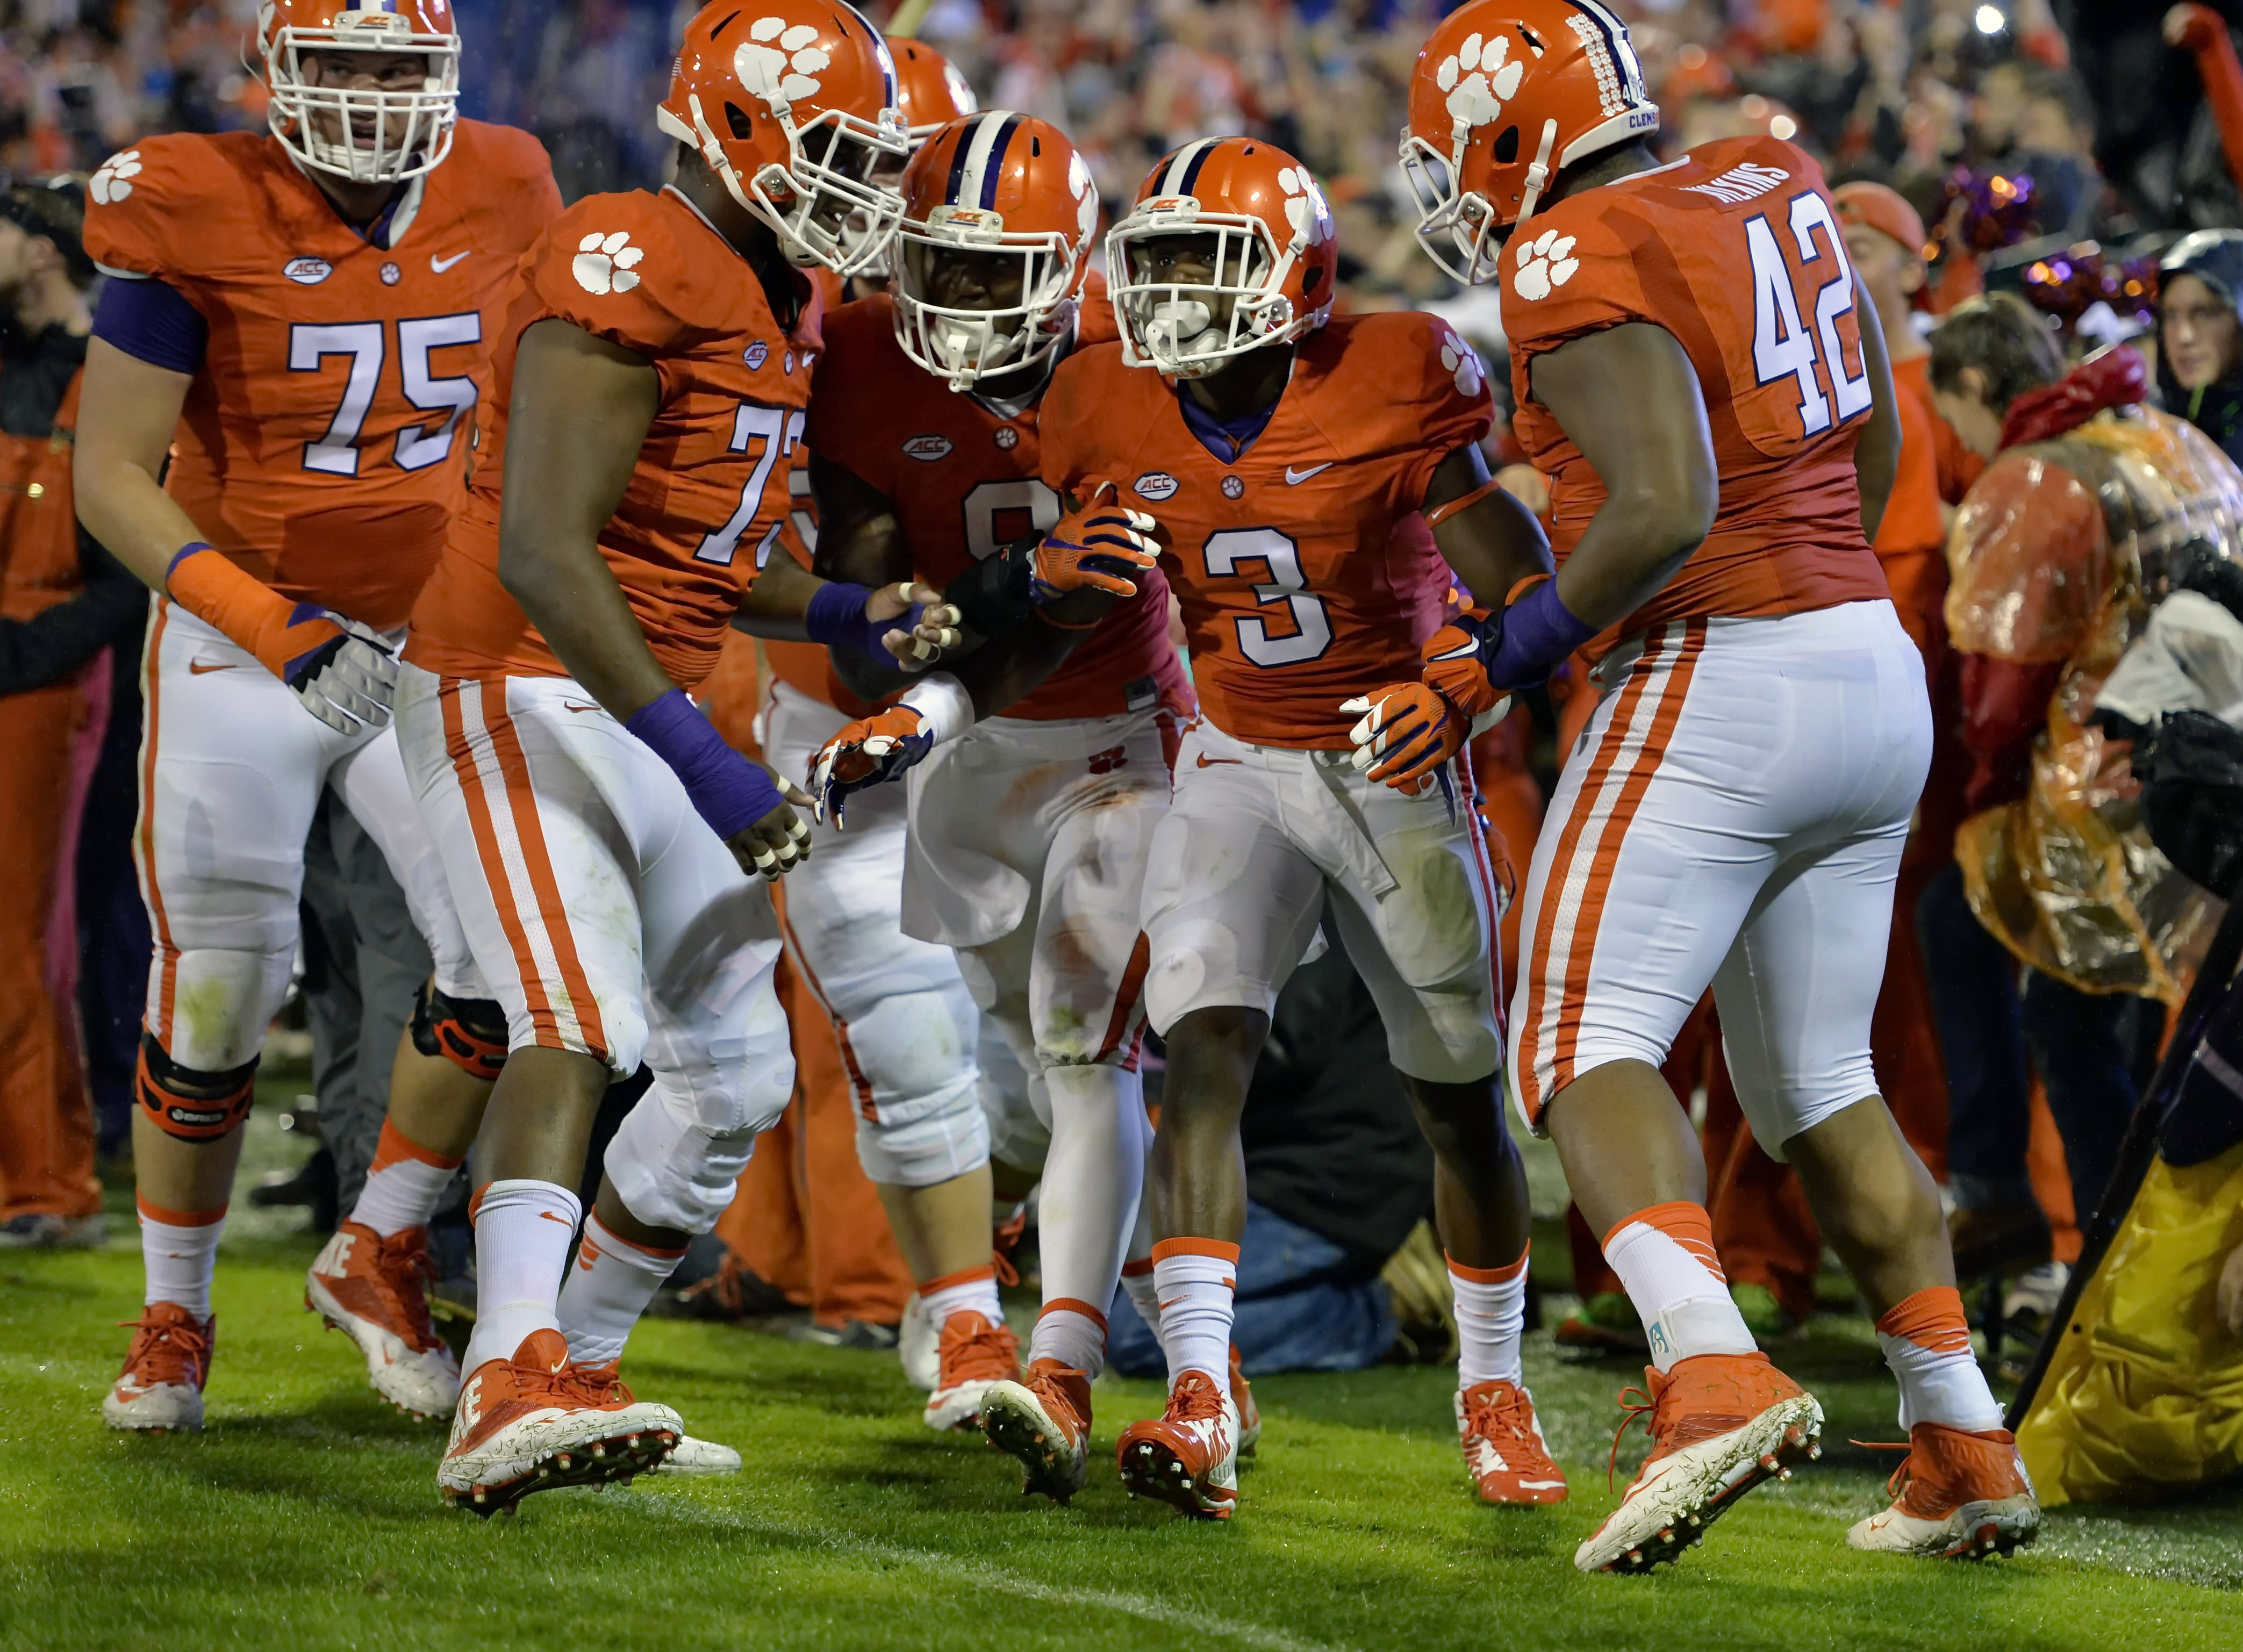 Clemson's Artavis Scott celebrates his touchdown with his teammates during the first half of an NCAA college football game against Notre Dame, Saturday, Oct. 3, 2015, in Clemson, S.C. (AP Photo/Richard Shiro)